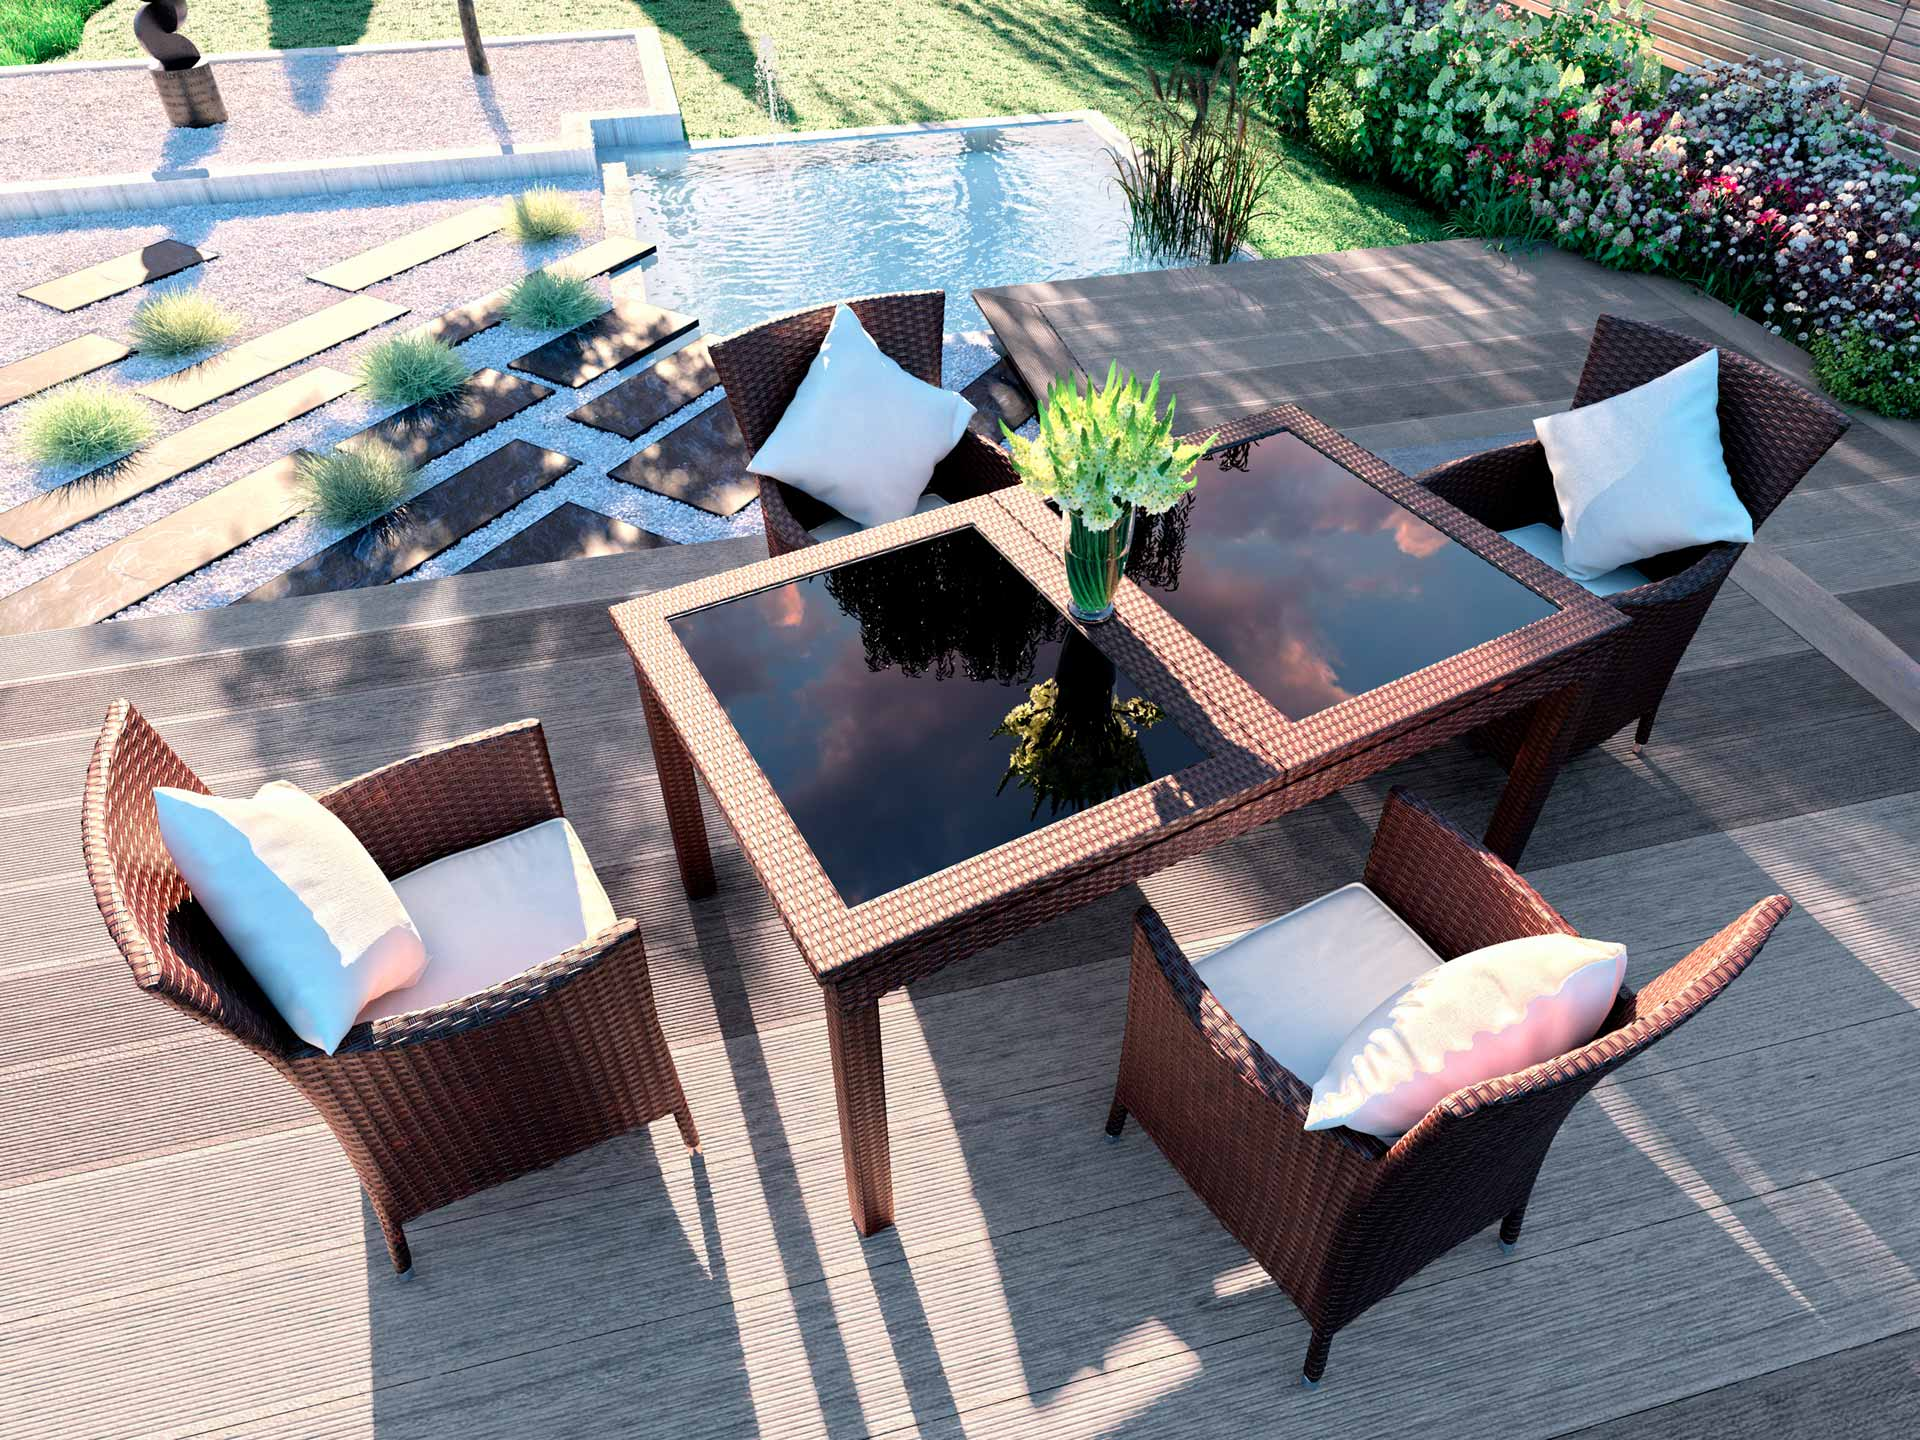 ceresia_m_big Incroyable De Table Et Chaise De Jardin En Resine